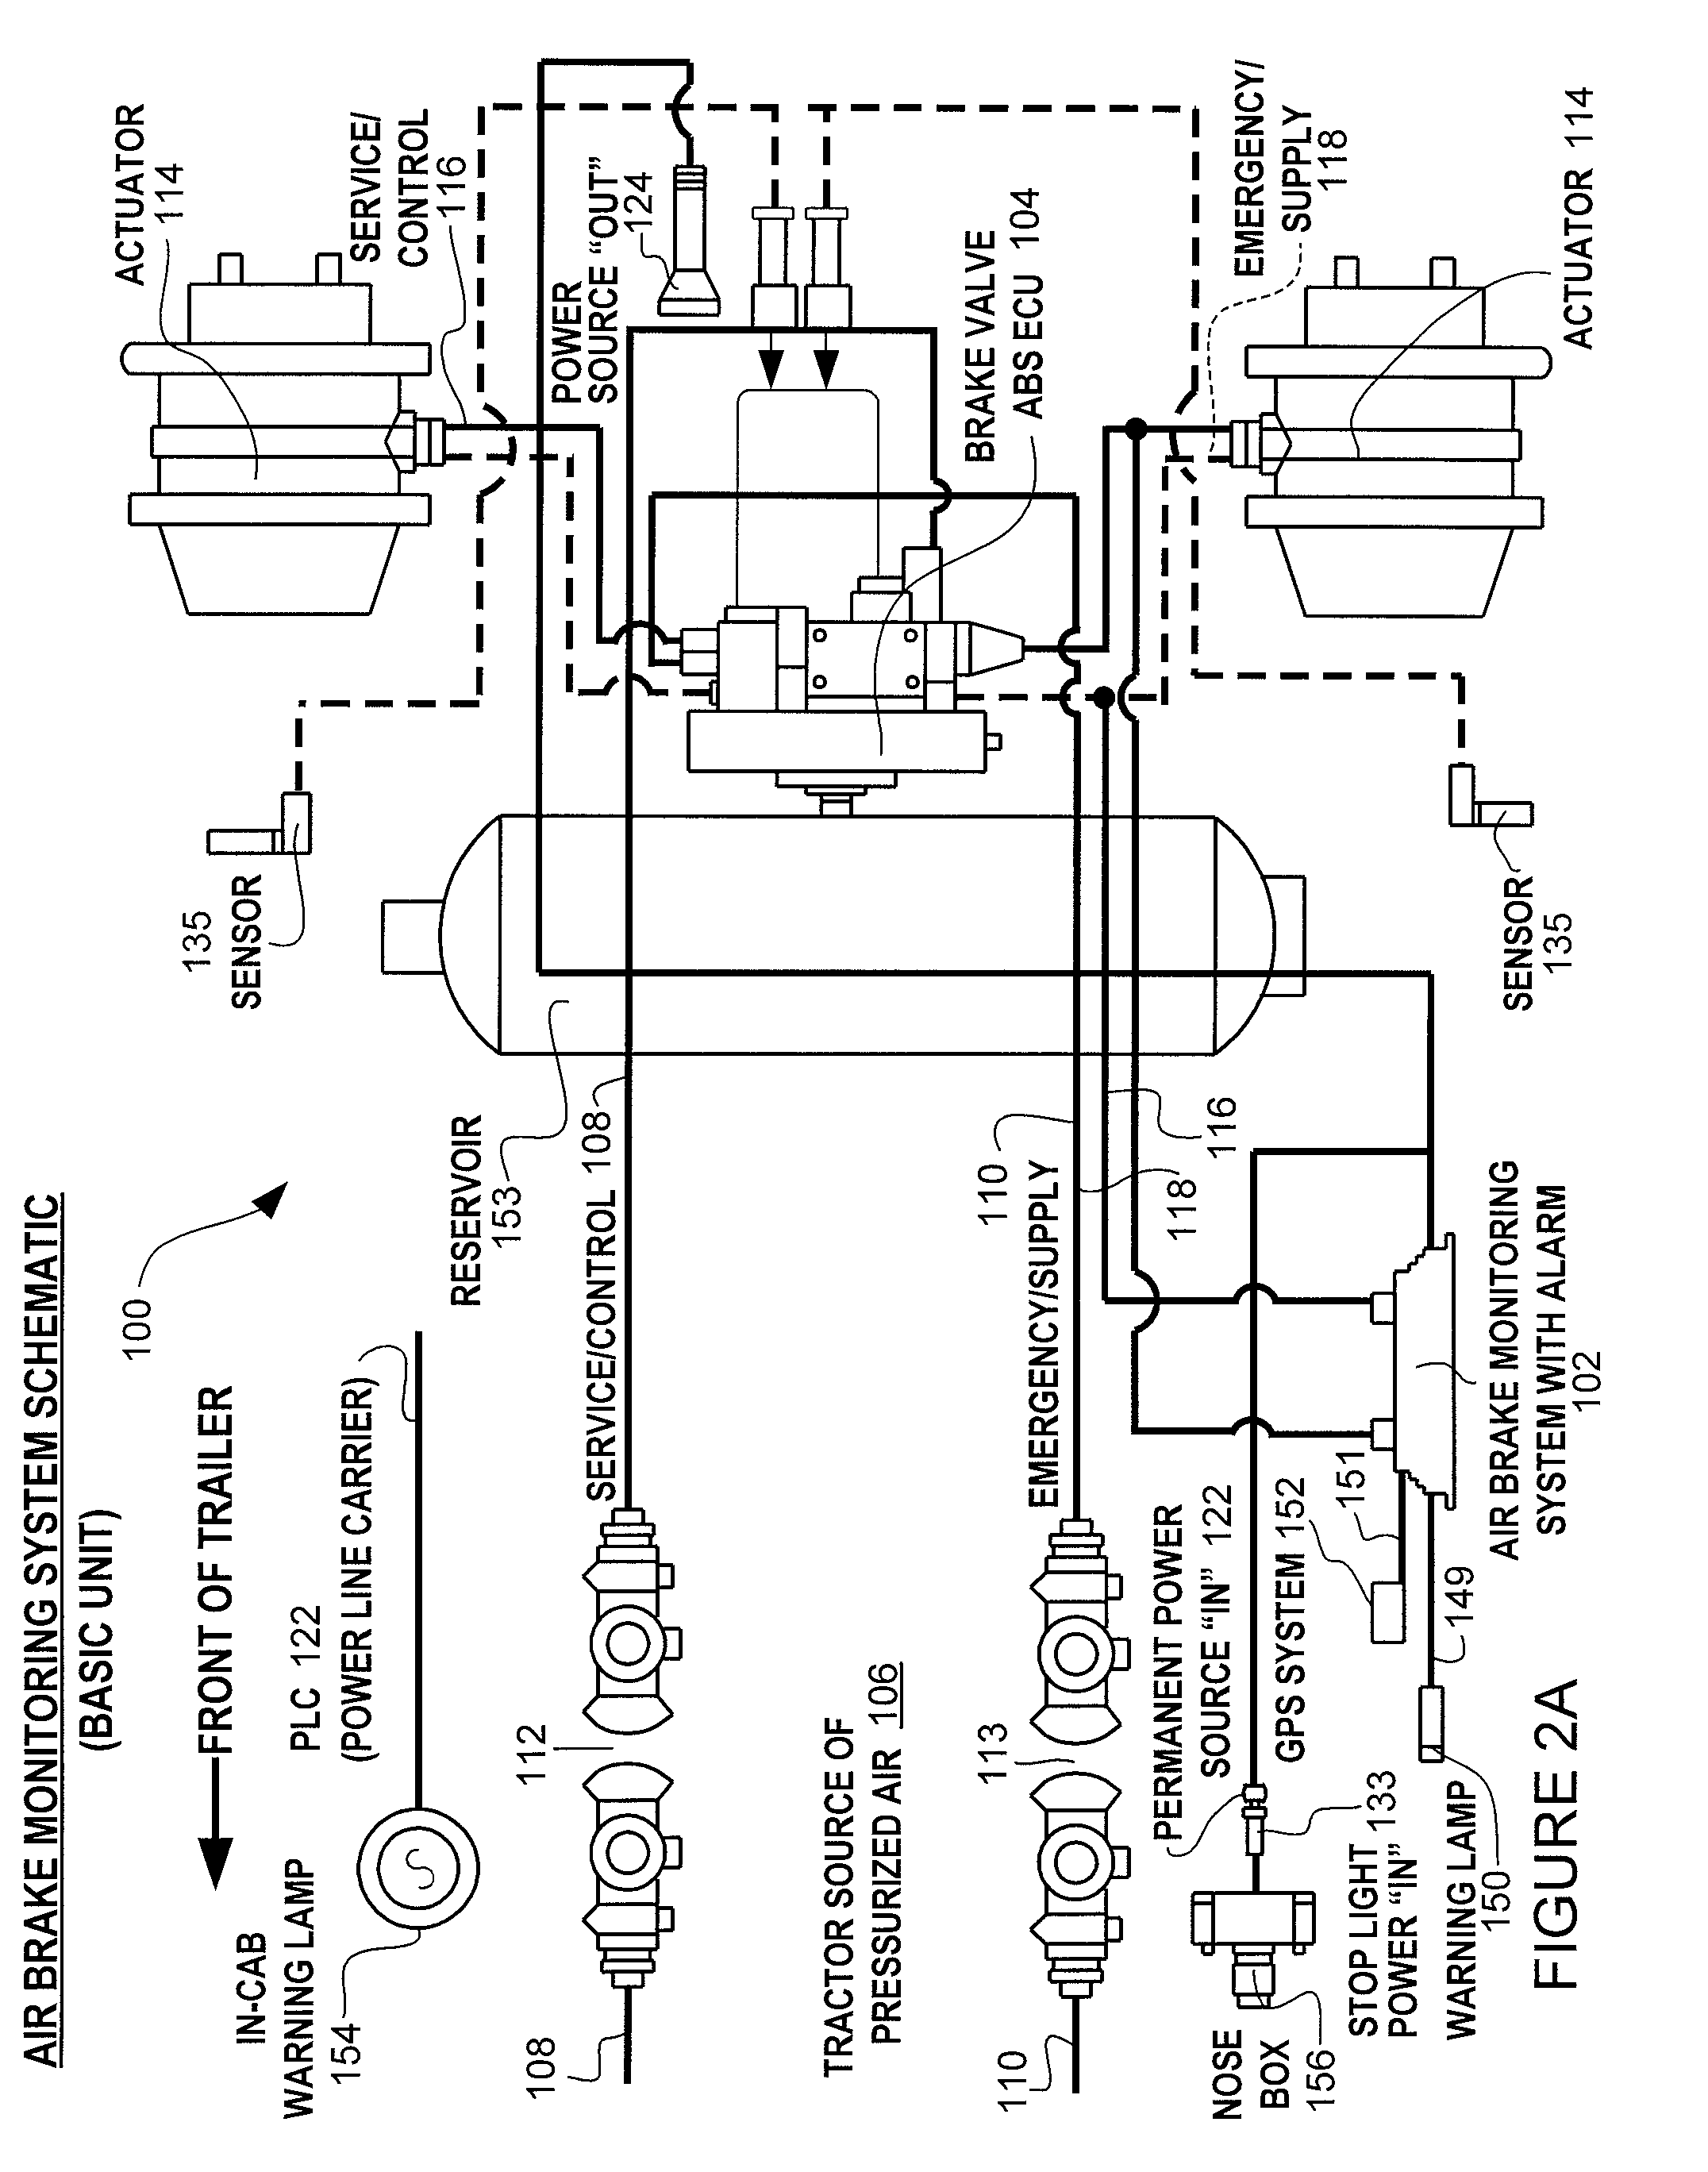 patent us8204668 - brake monitoring system